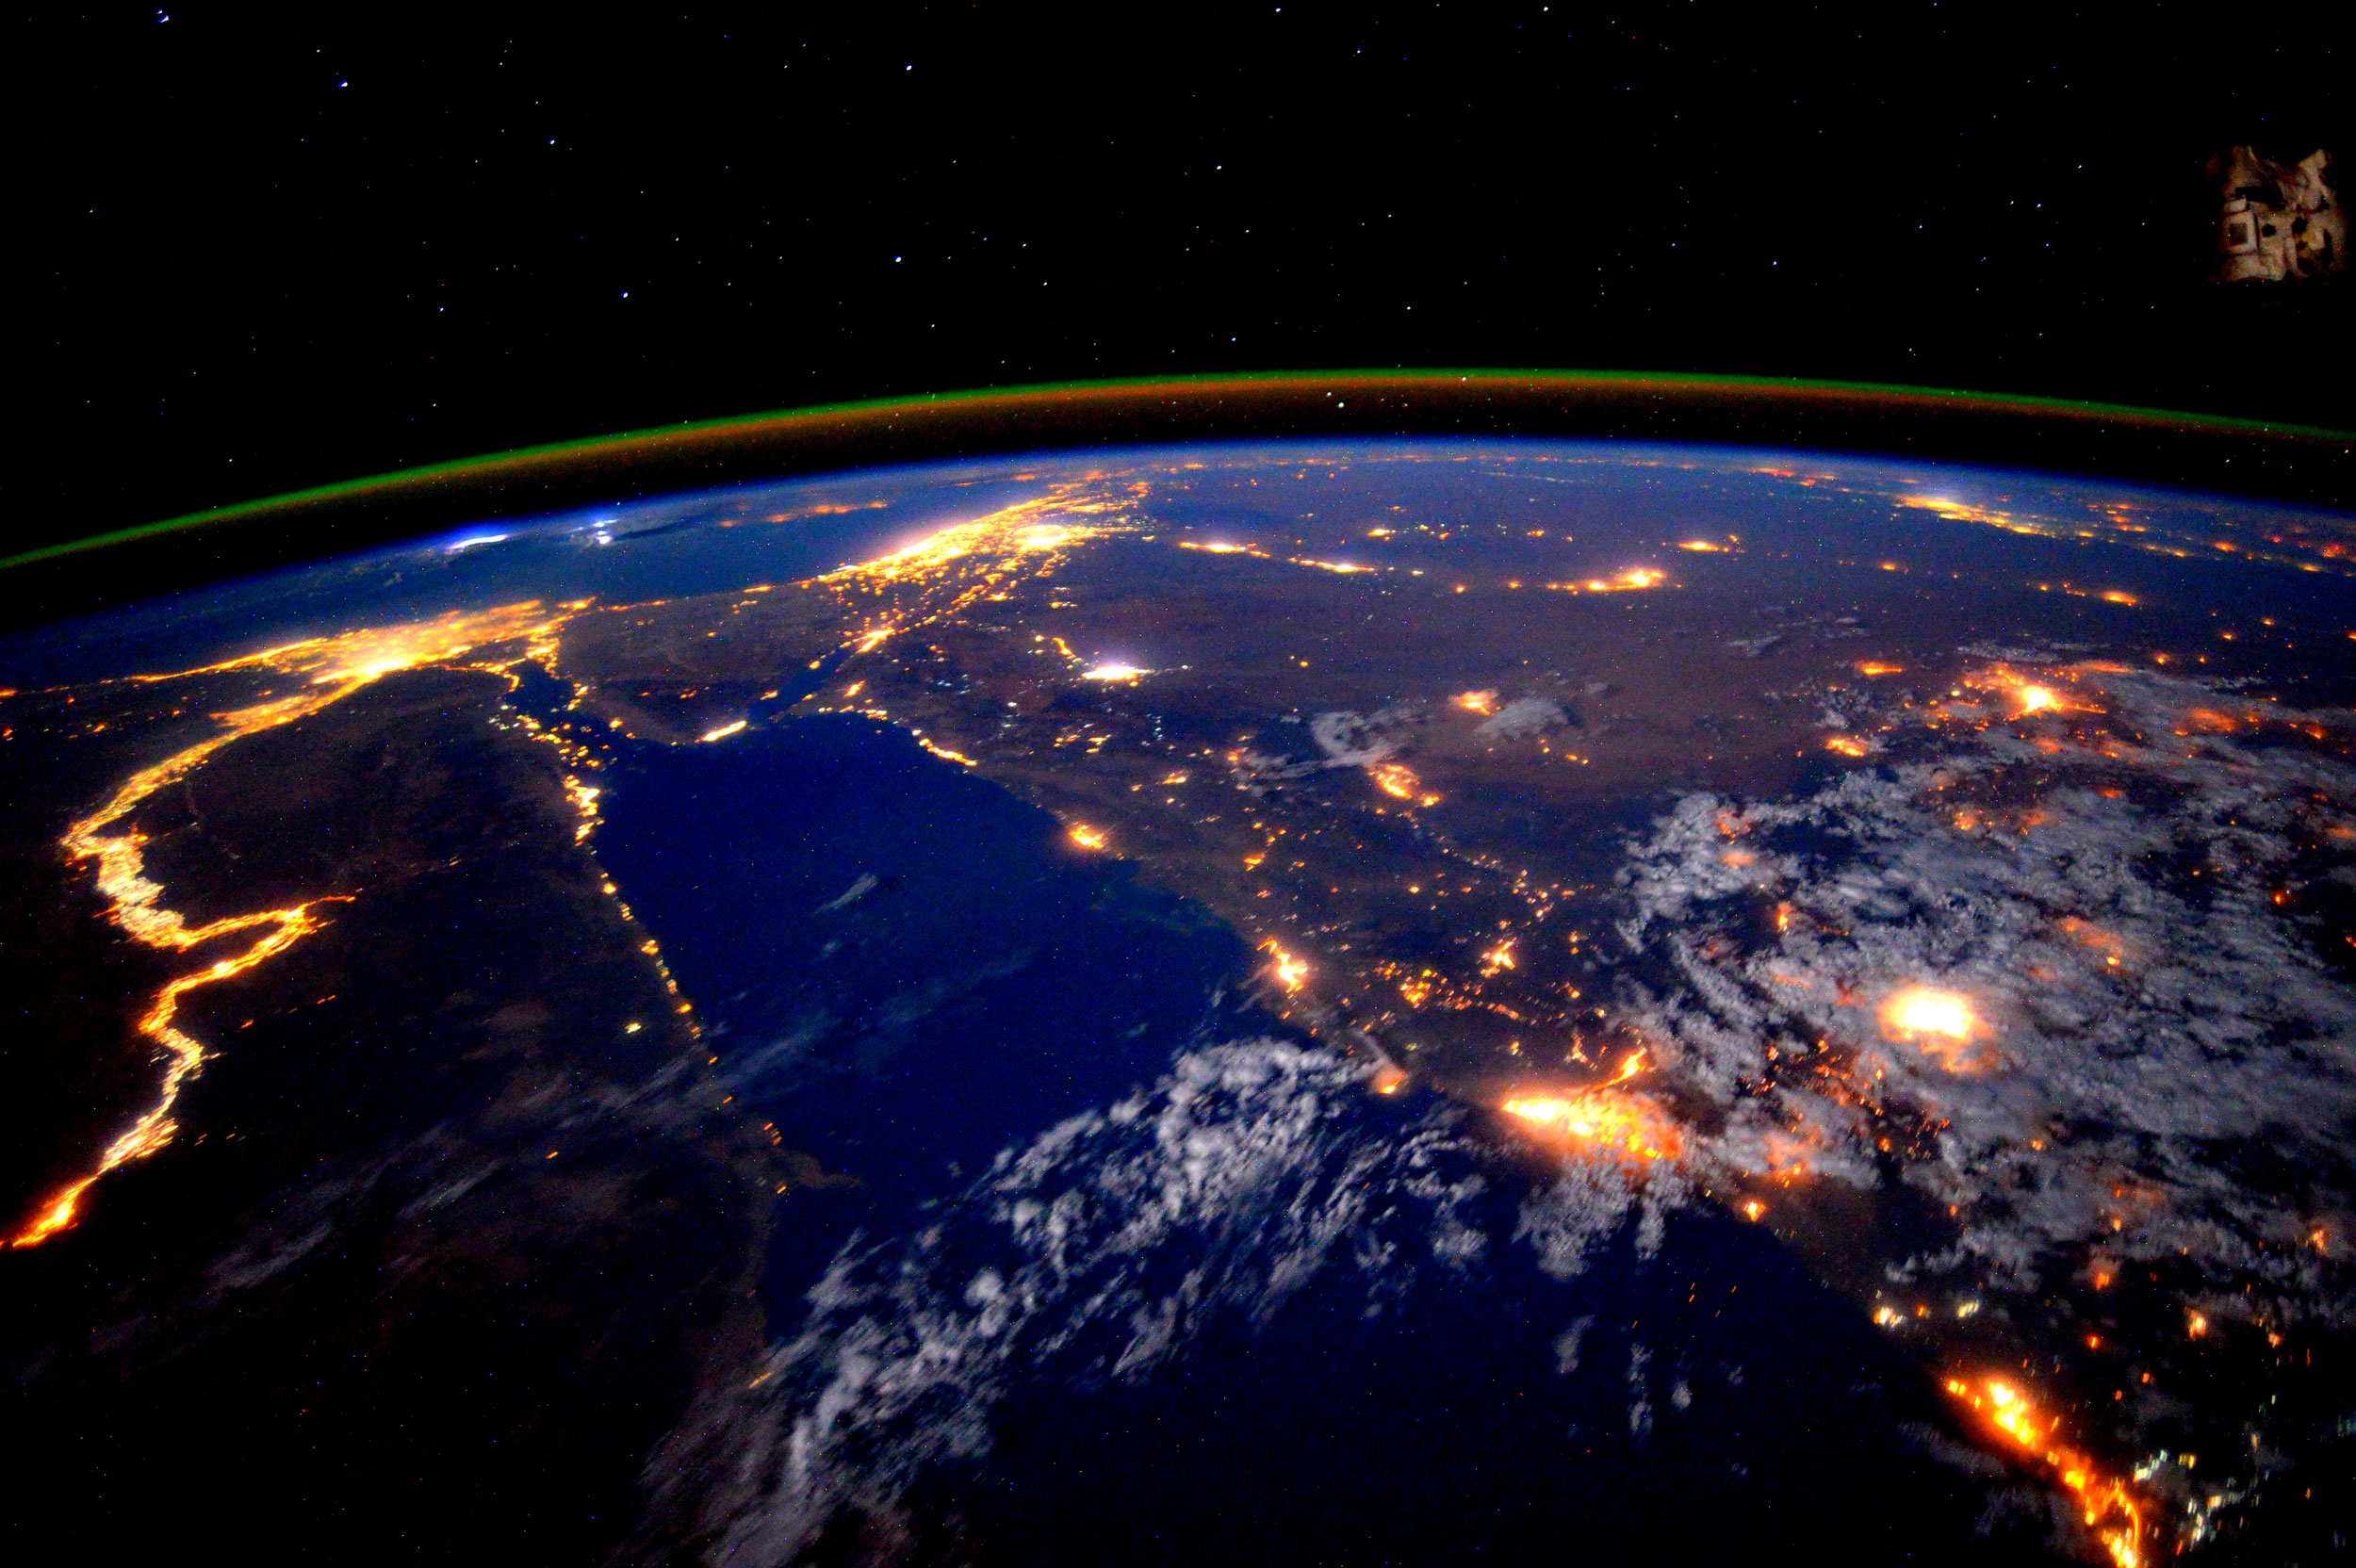 astronaut scott kelly views the nile at night from the